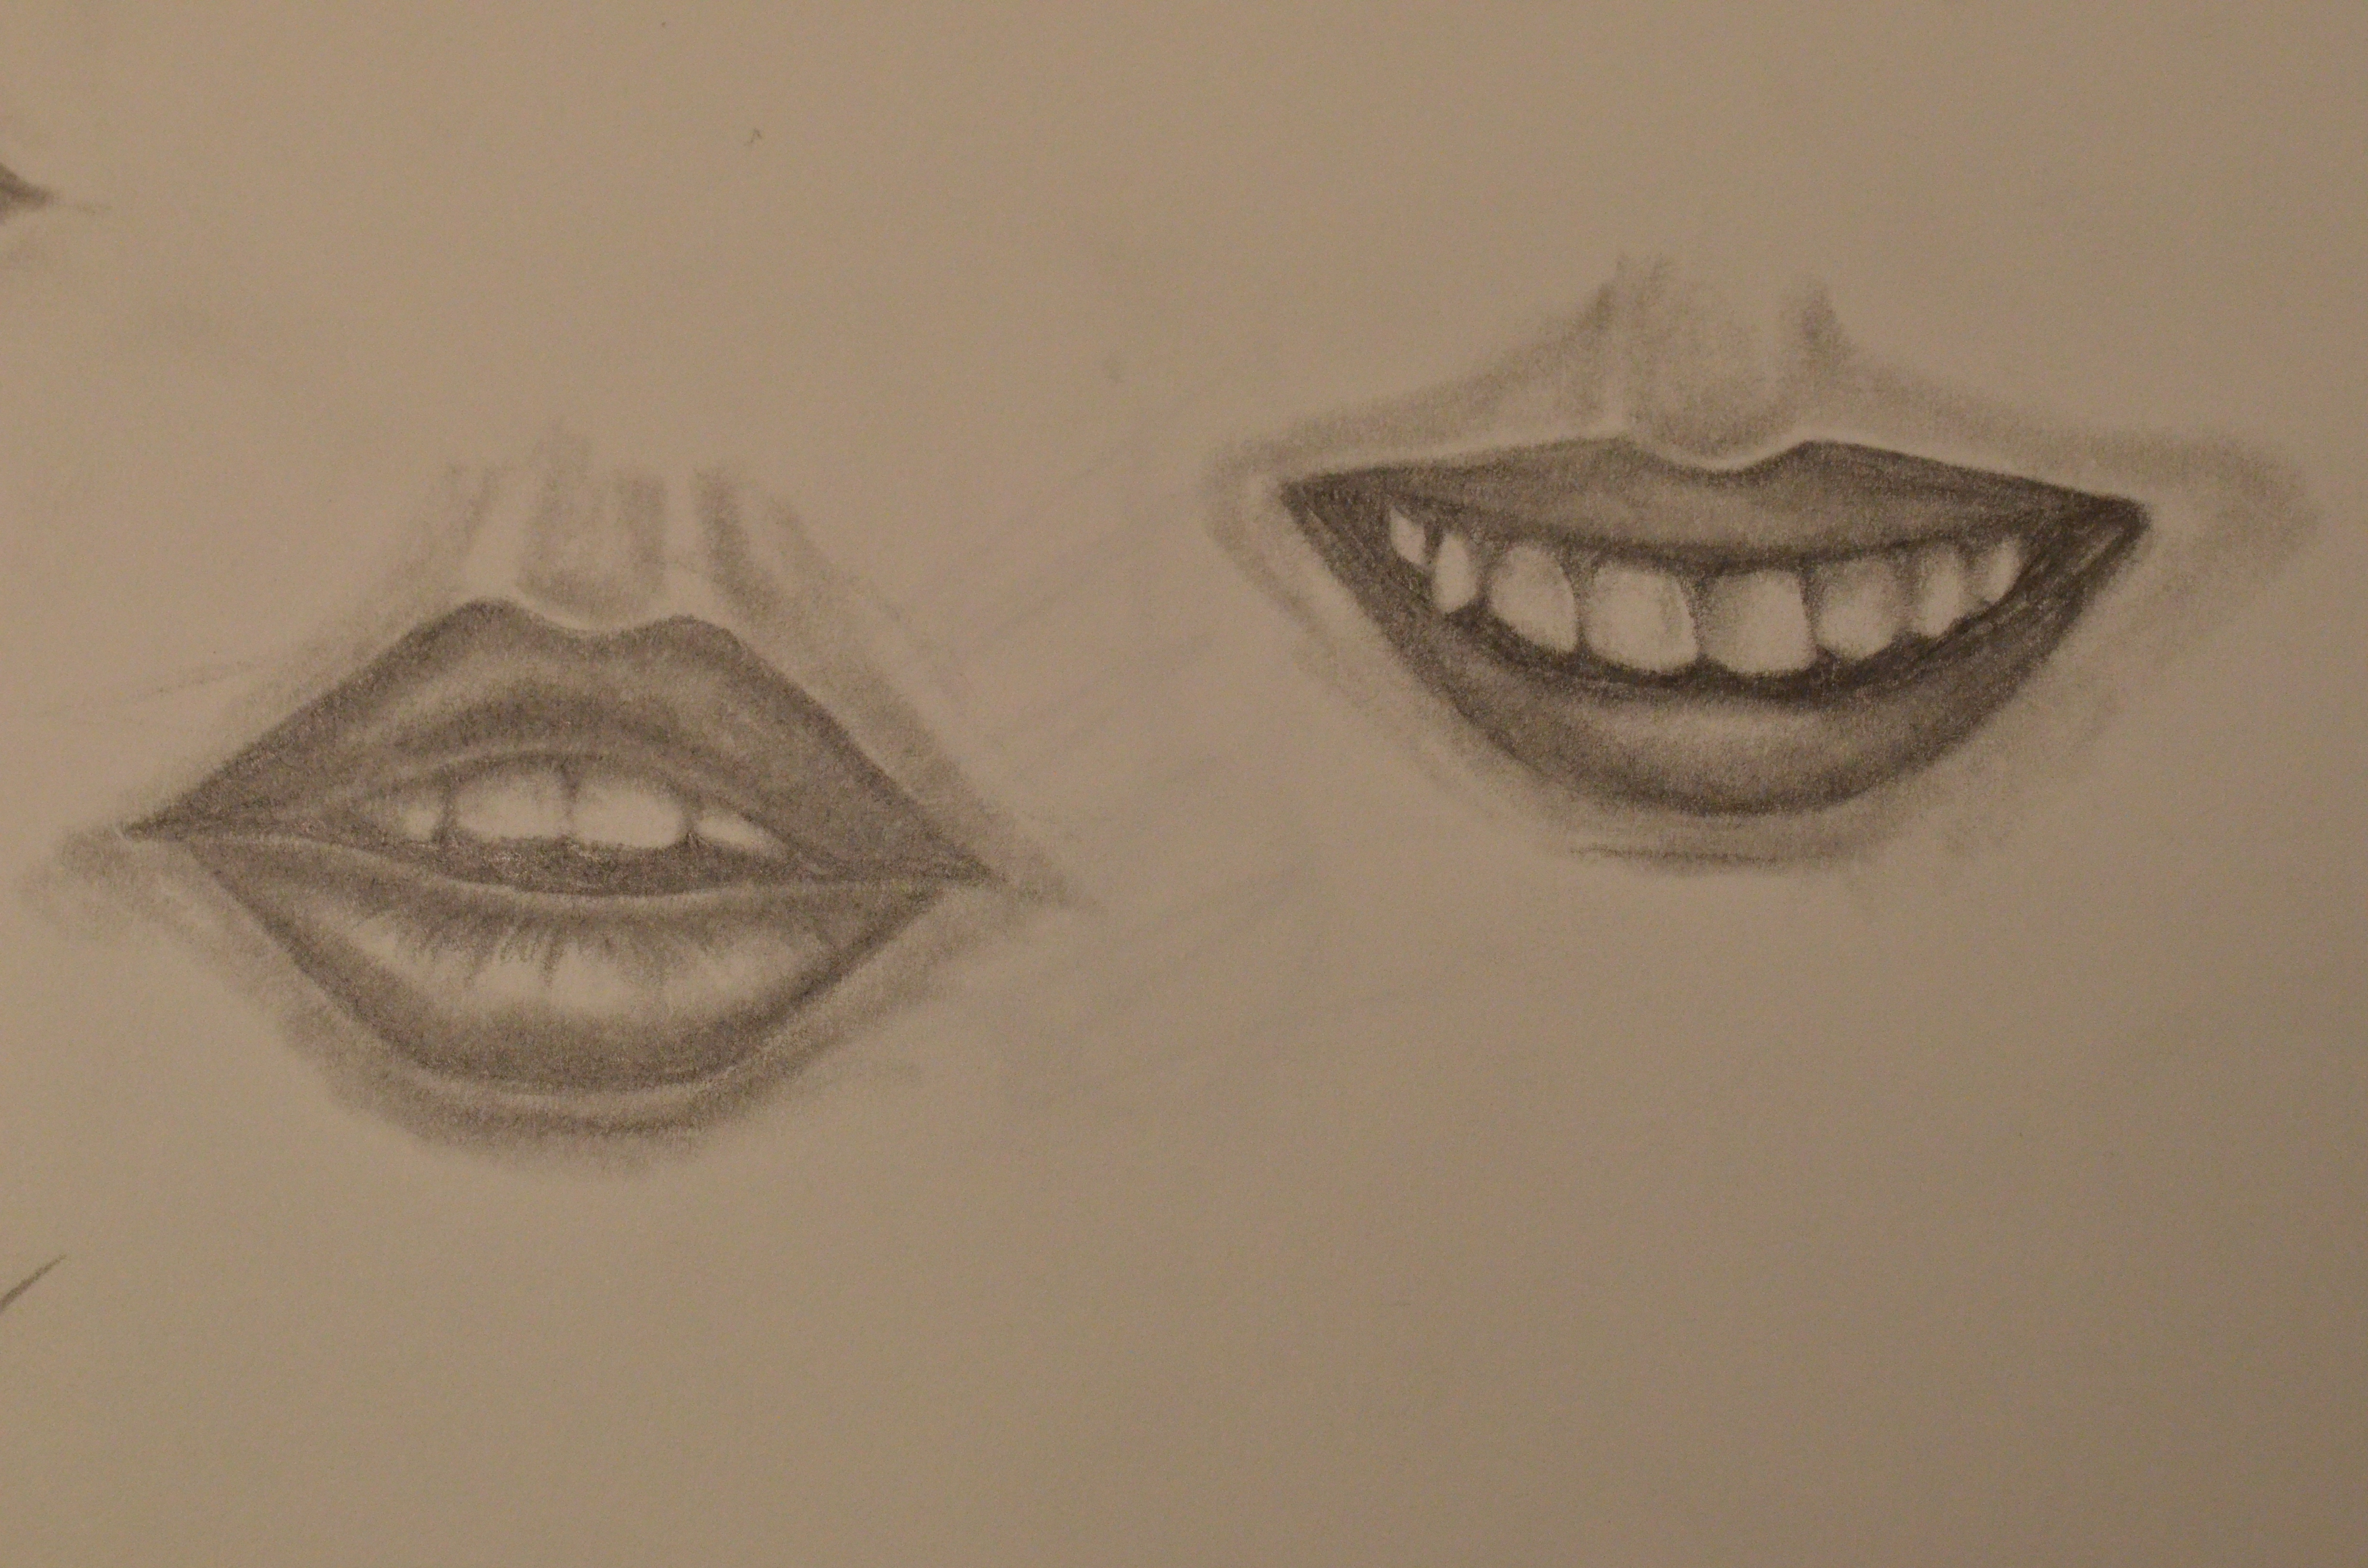 4928x3264 Drawing Of Facial Features Facial Feature Drawings Mrs Bailey'S